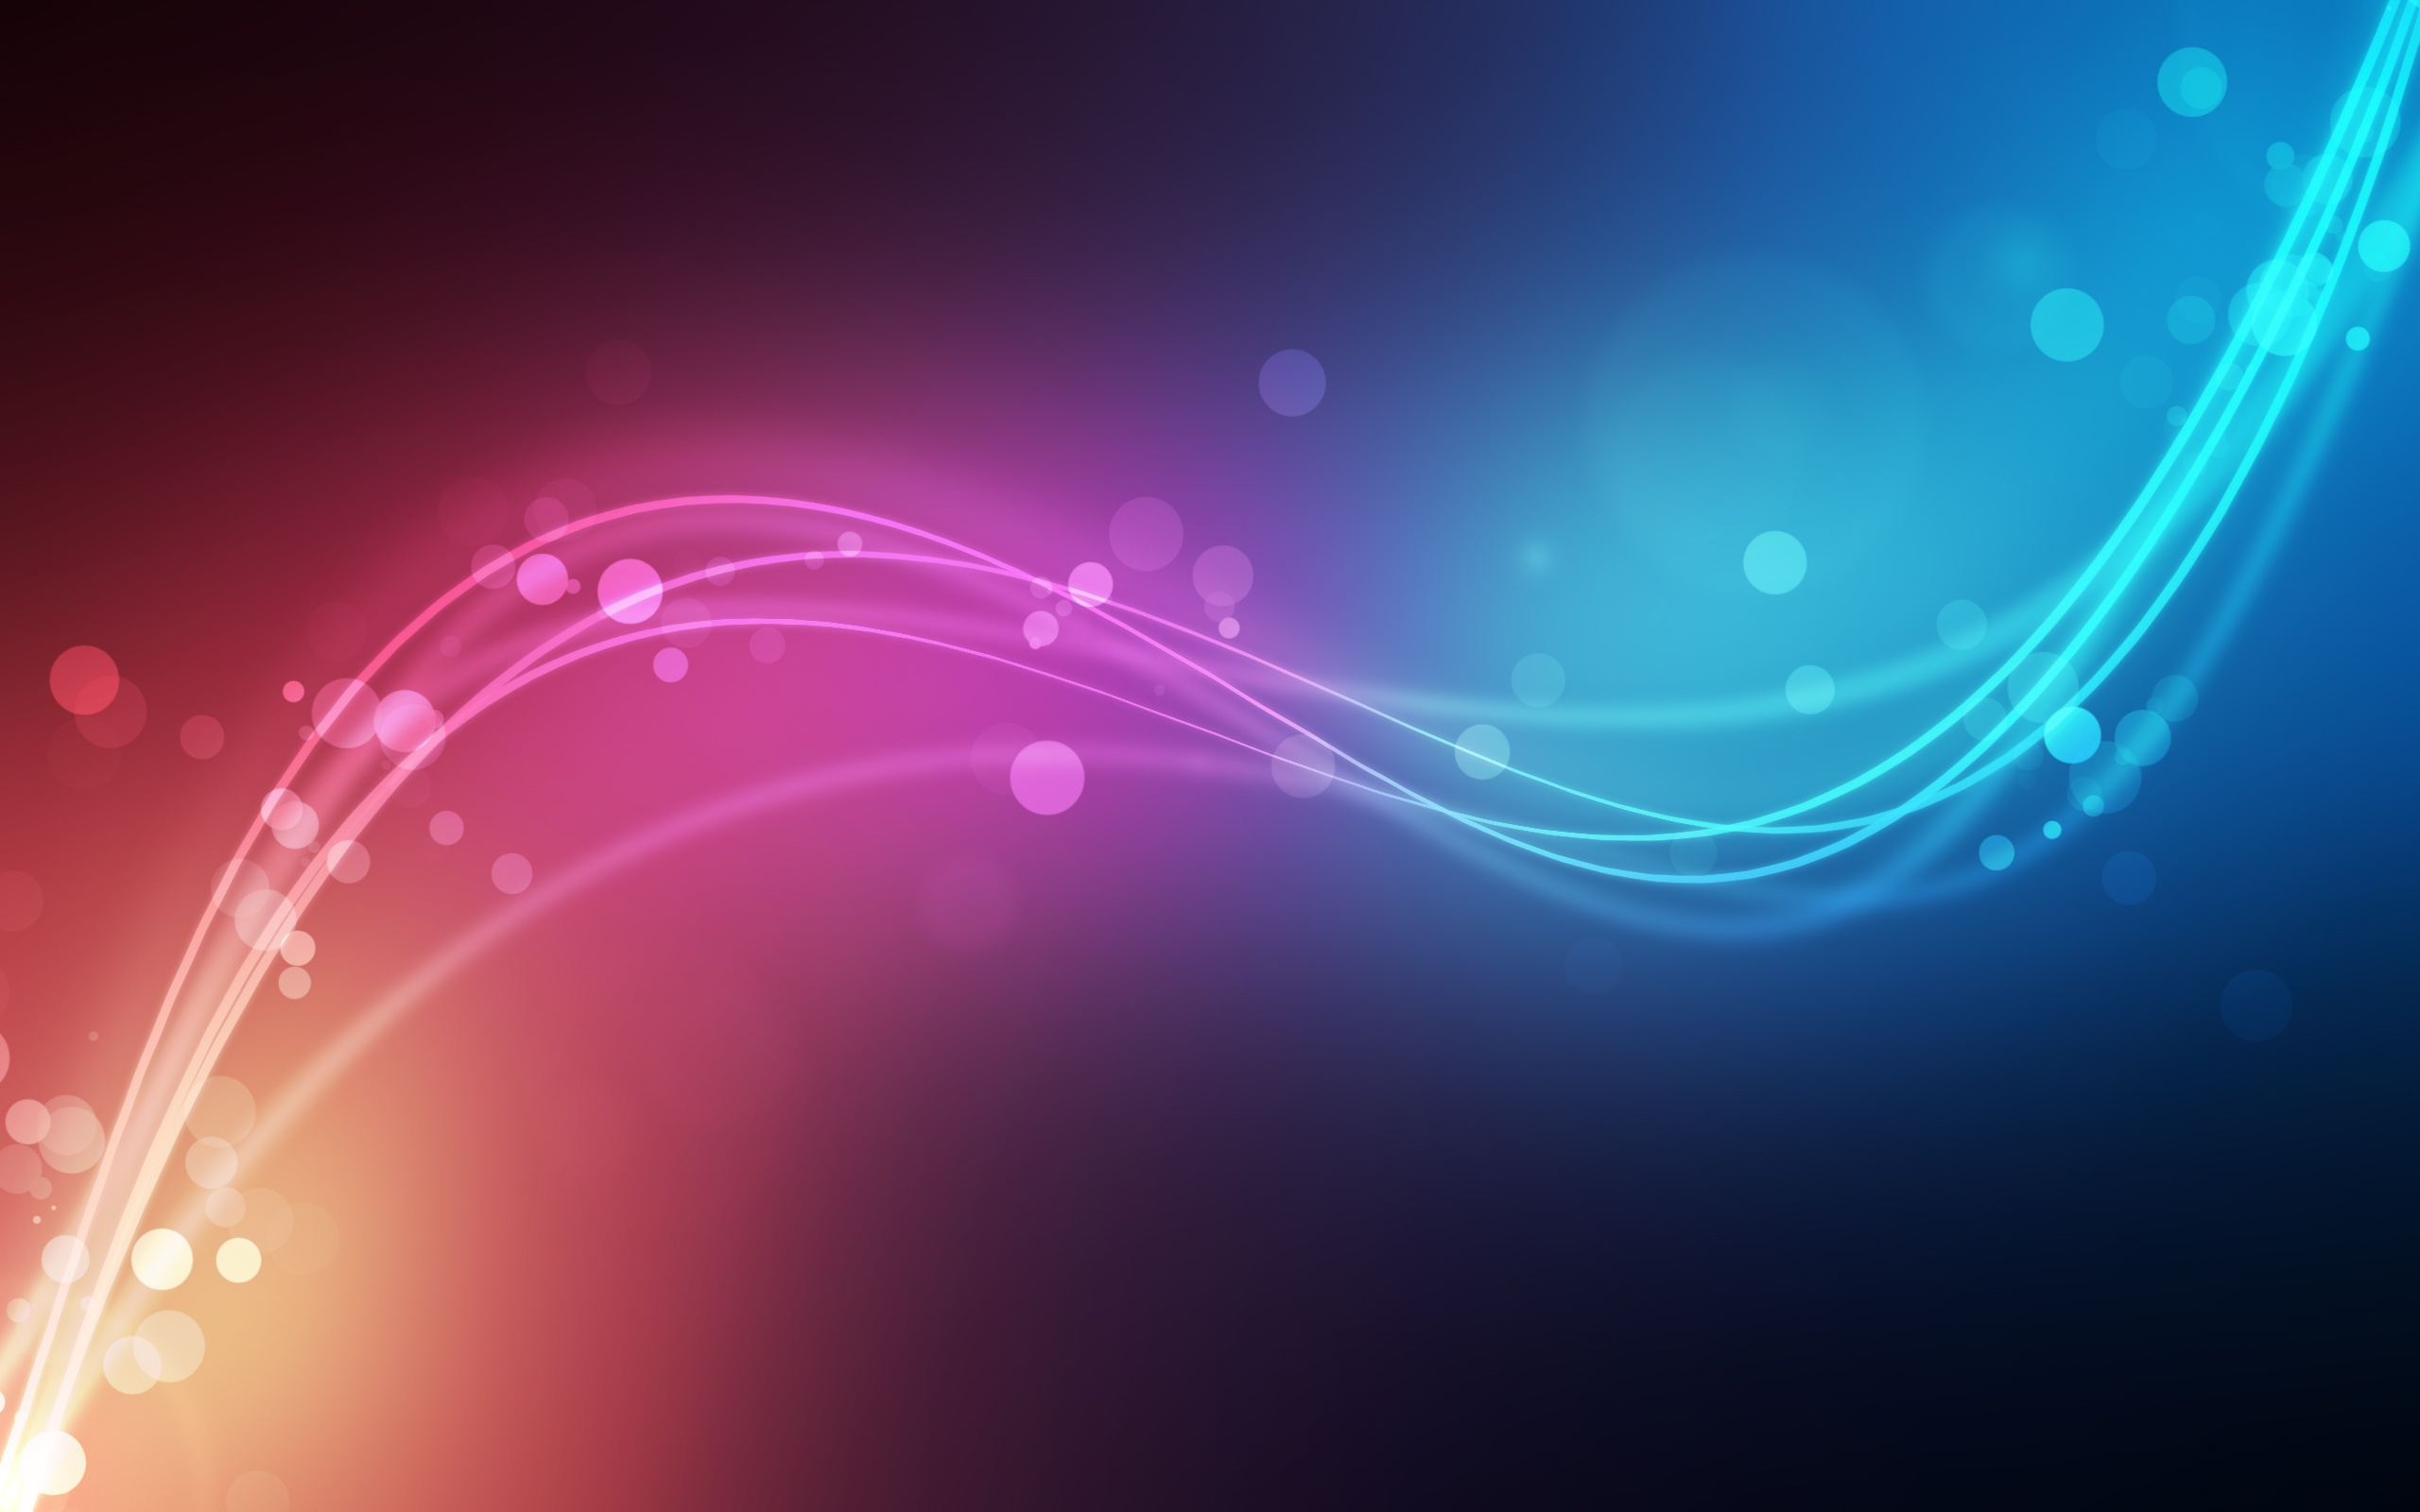 Abstract Ps3 720p Anime Wallpaper 1080p 10885 Hd Wallpapers 2560x1600